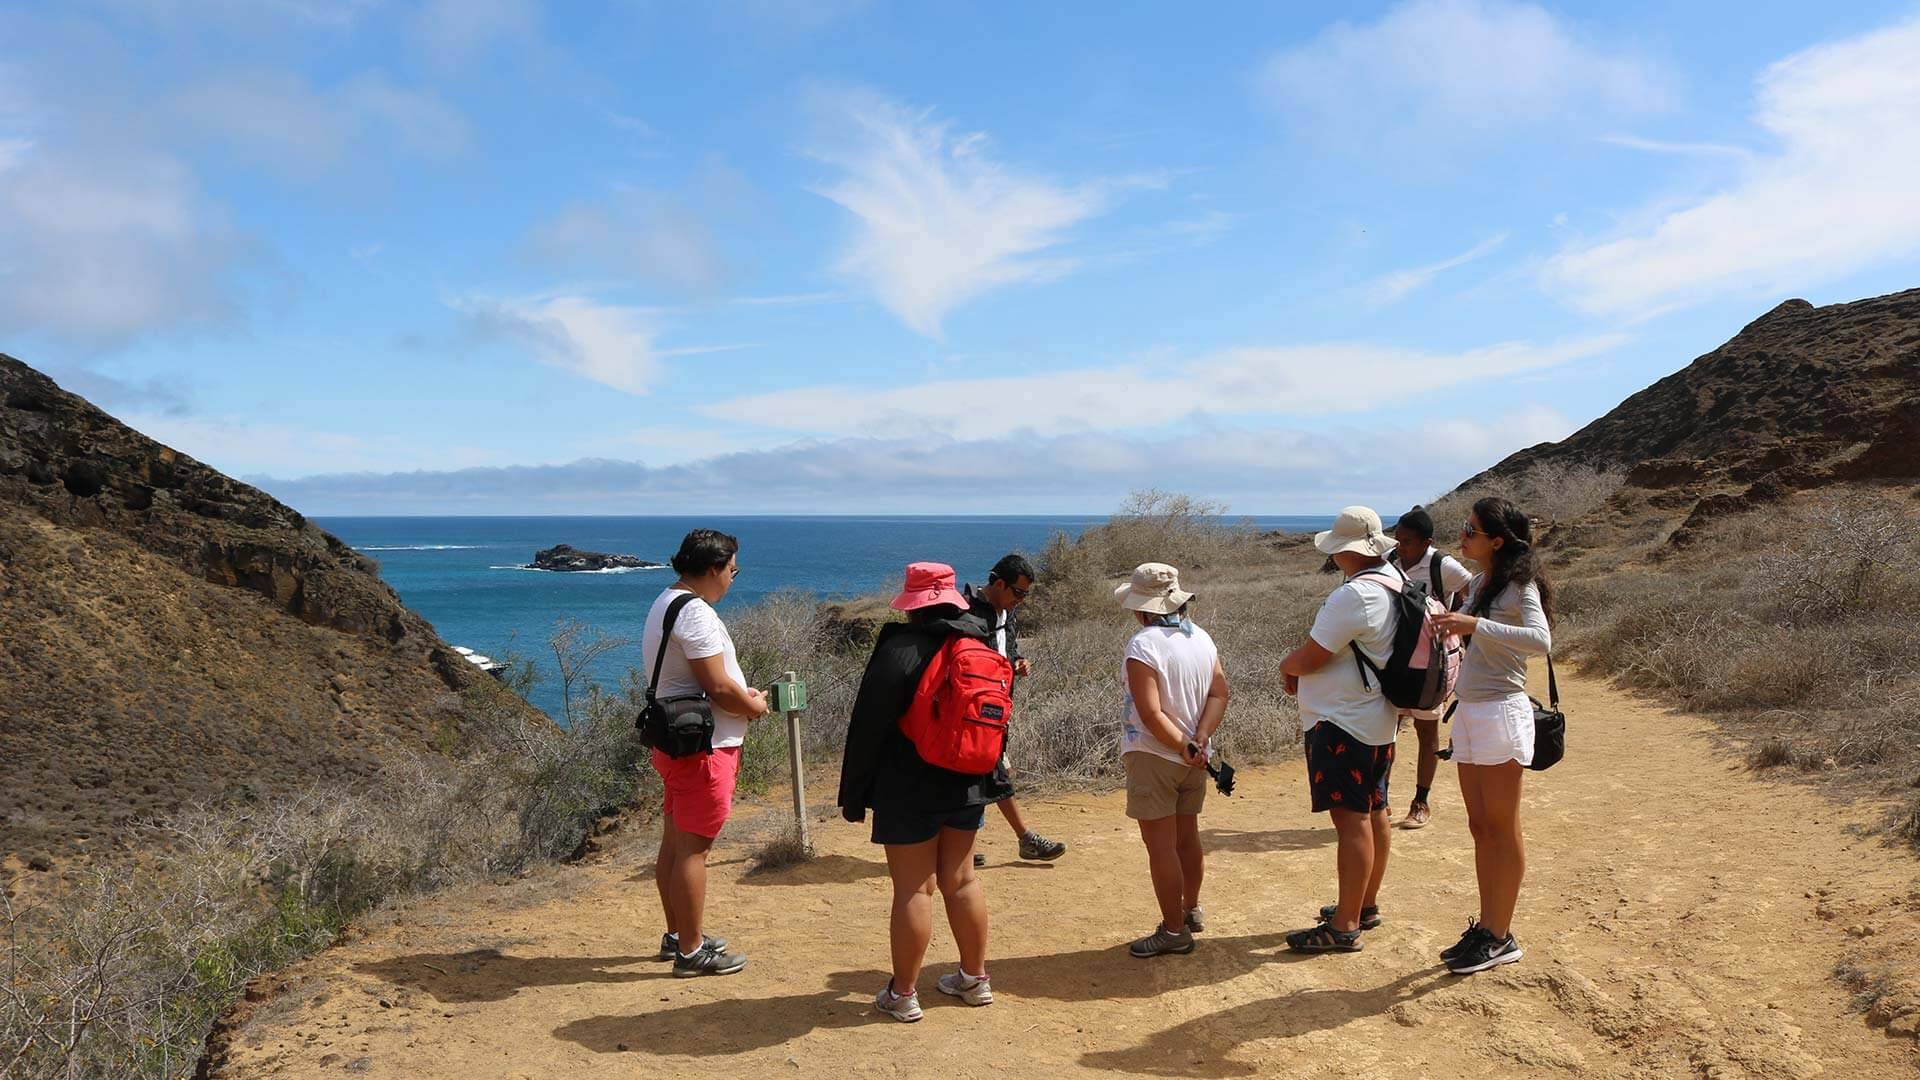 tourist group on guided trek at galapagos islands